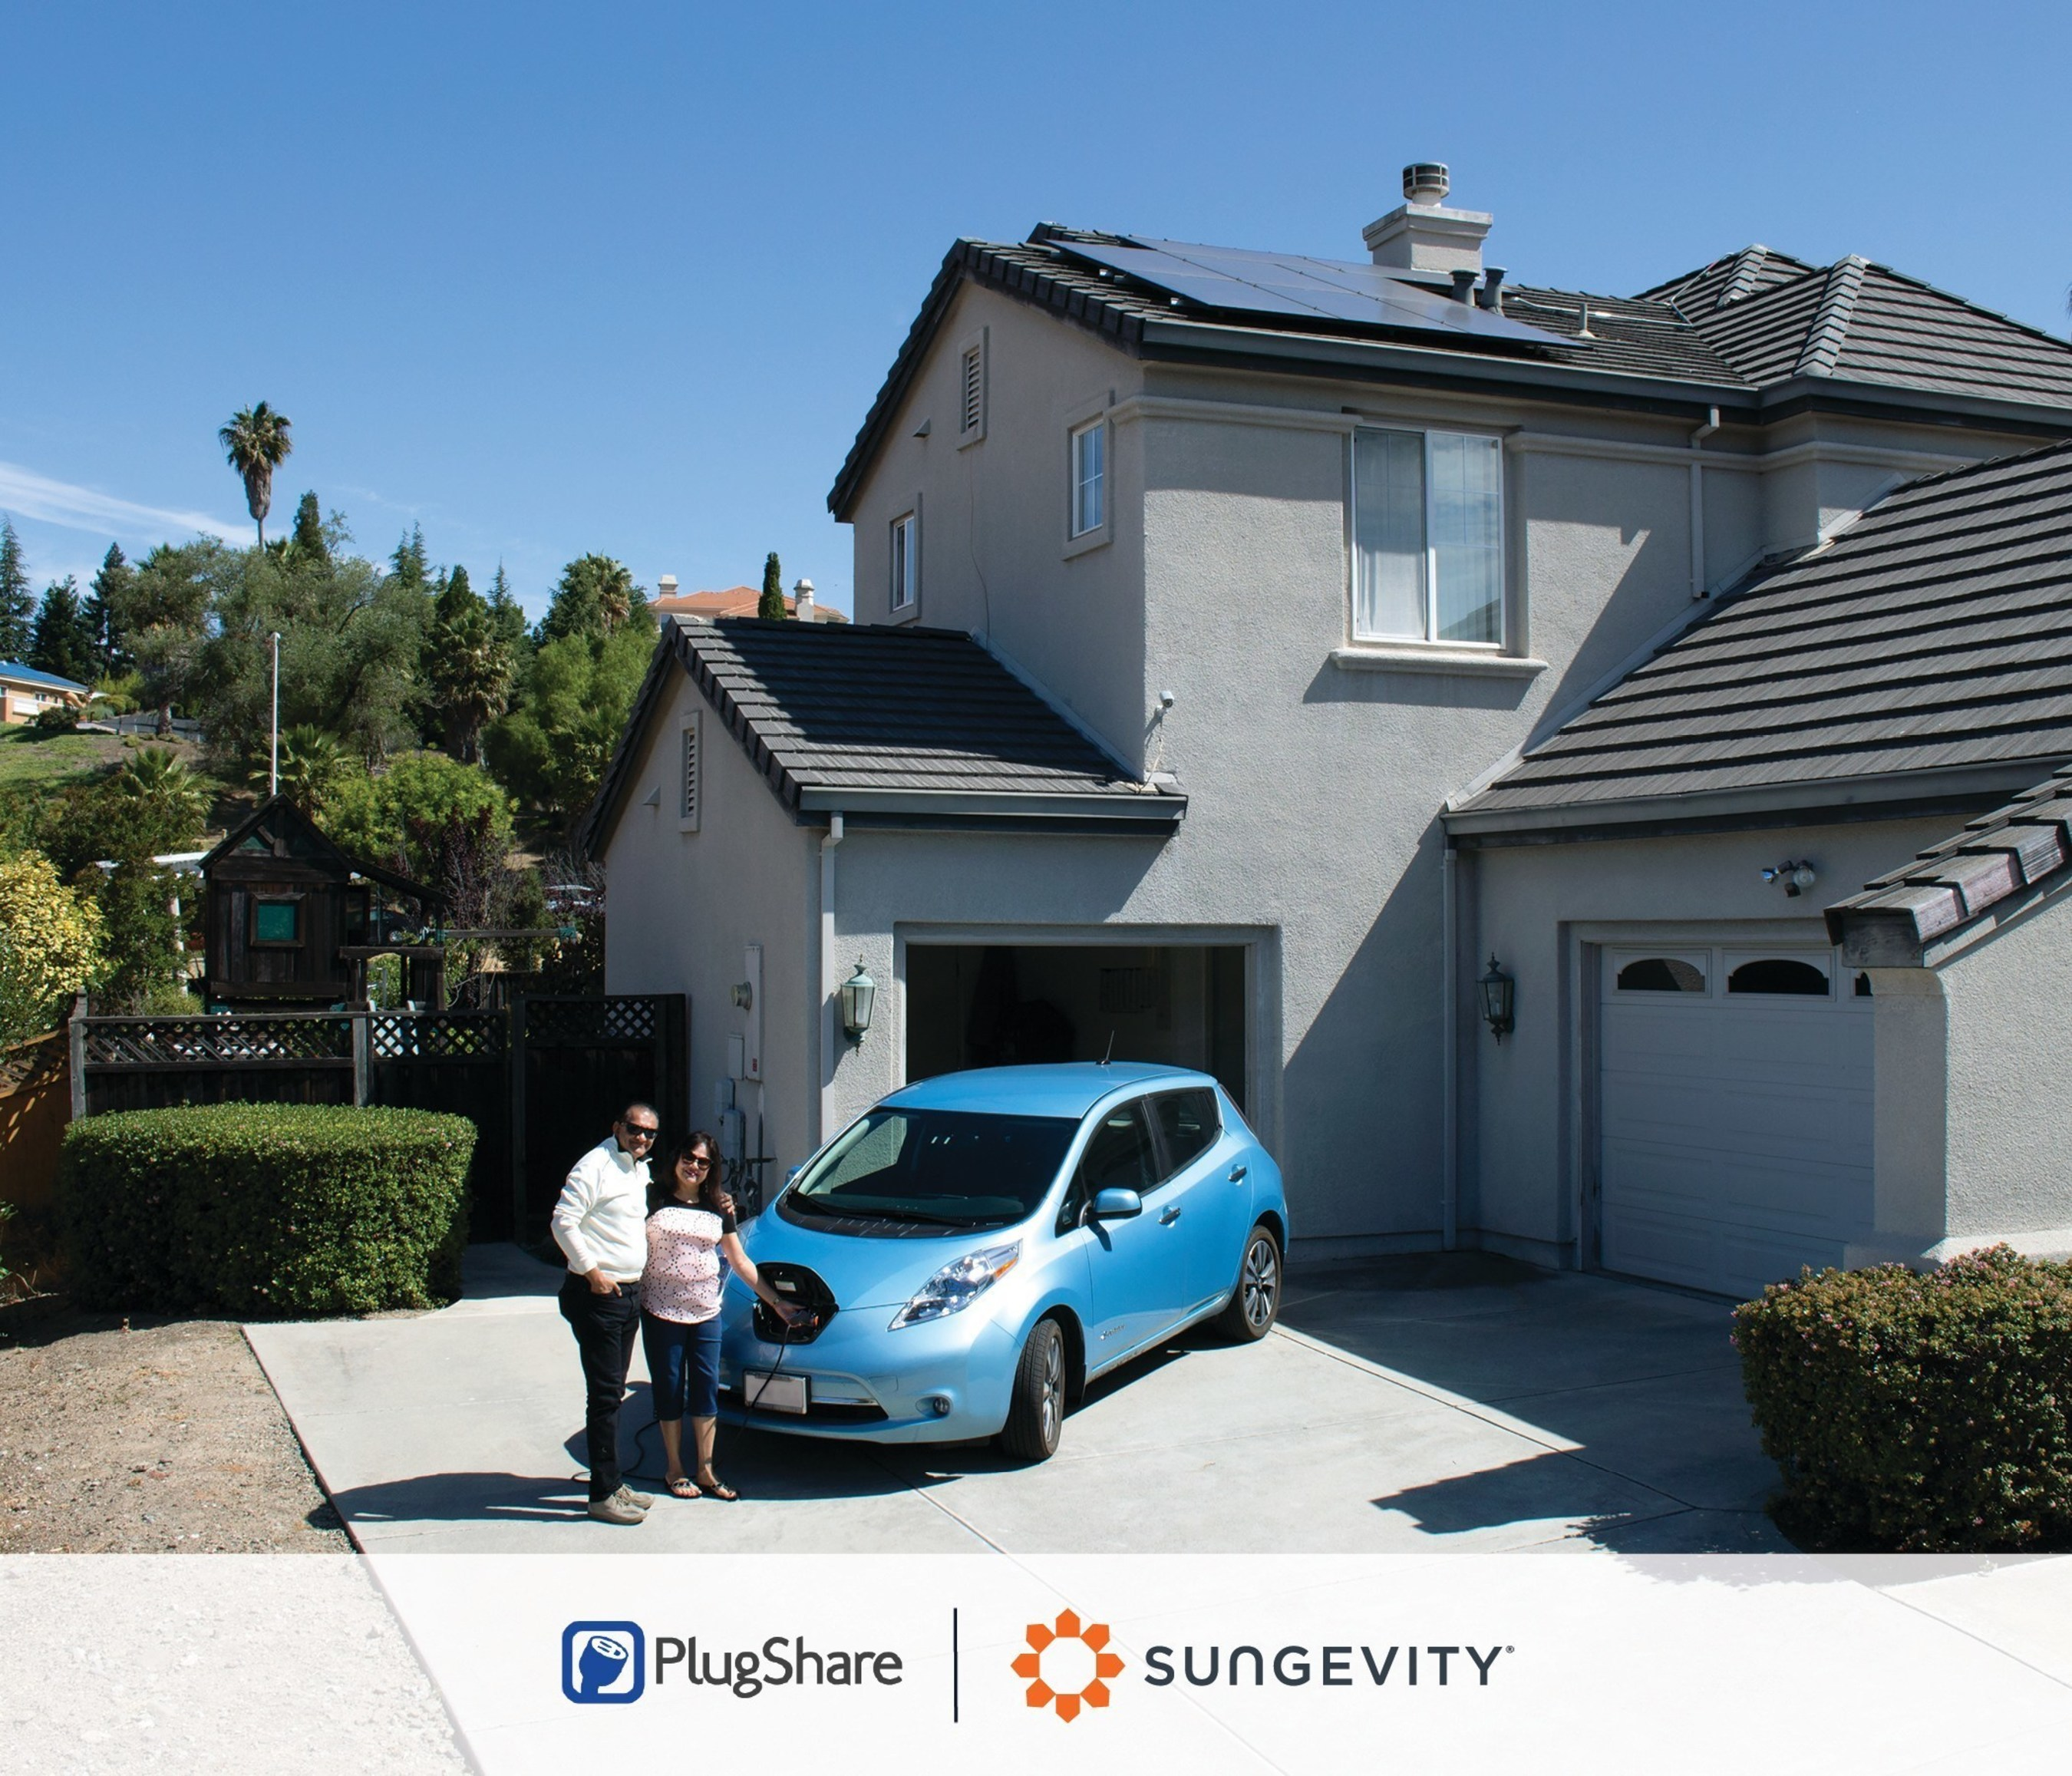 Plugshare Sungevity Drive Solar California Customers With Their Newly Installed System And Ev Charging